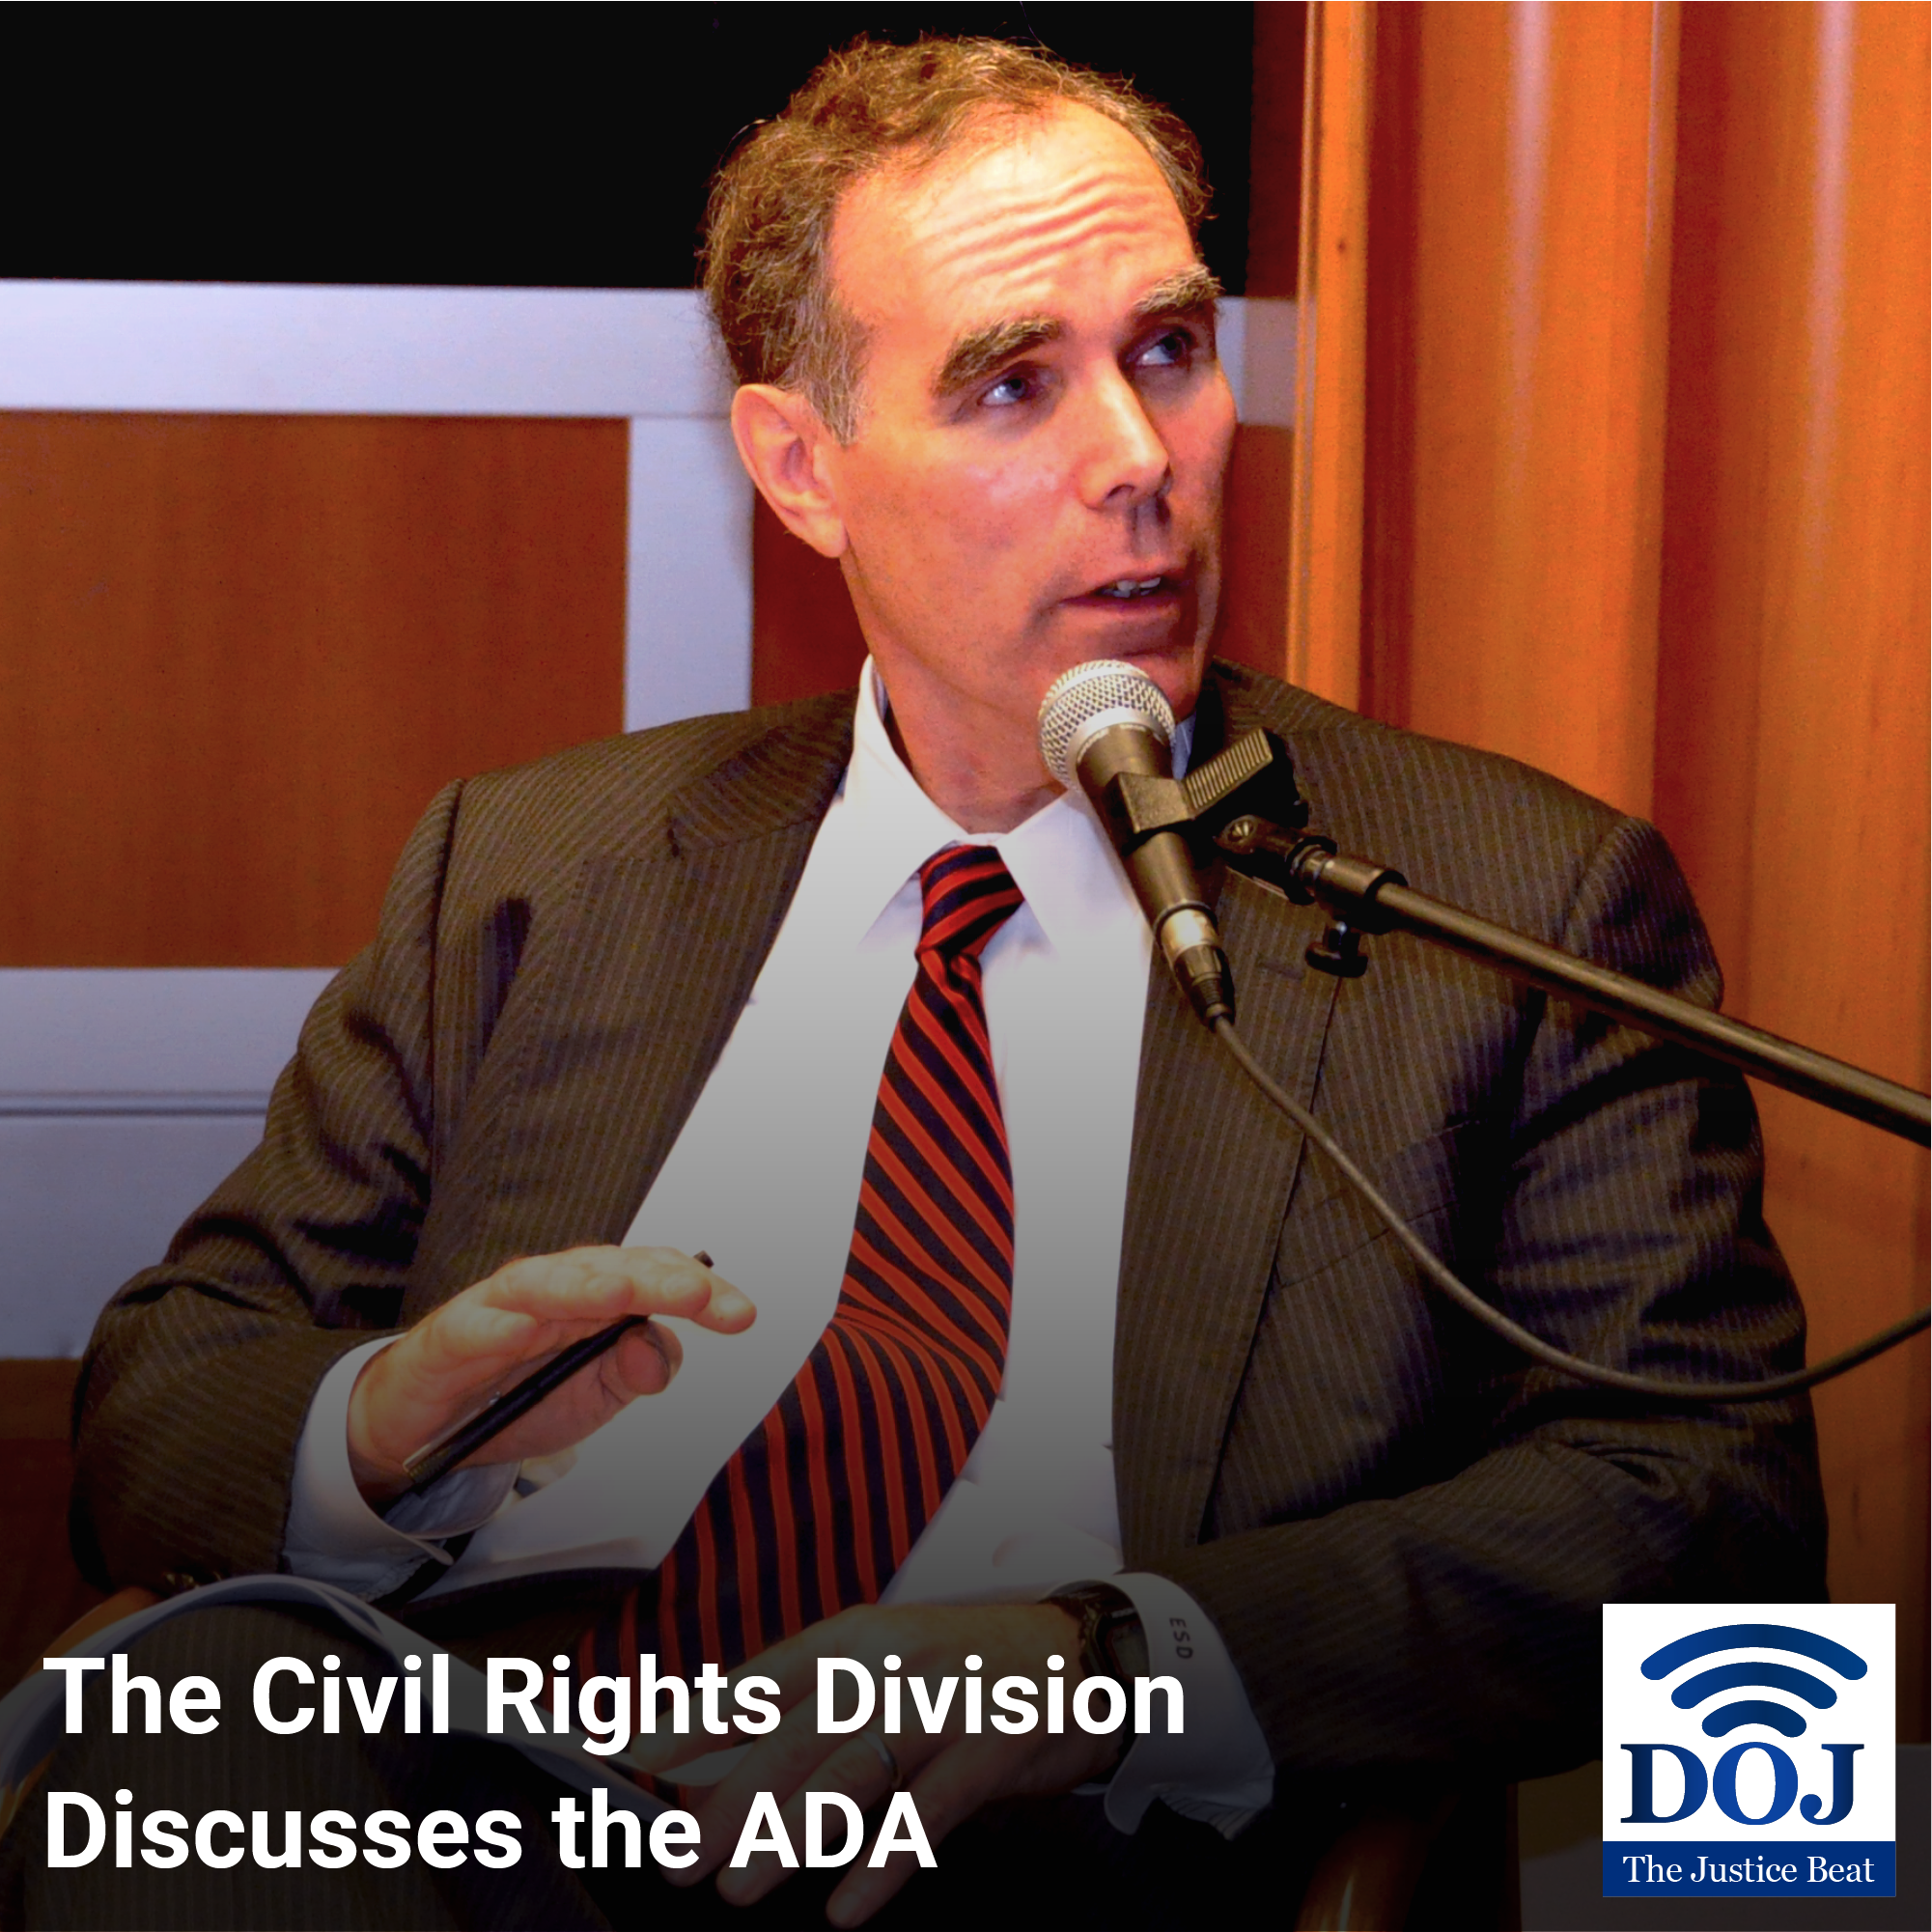 The Civil Rights Division Discusses the ADA